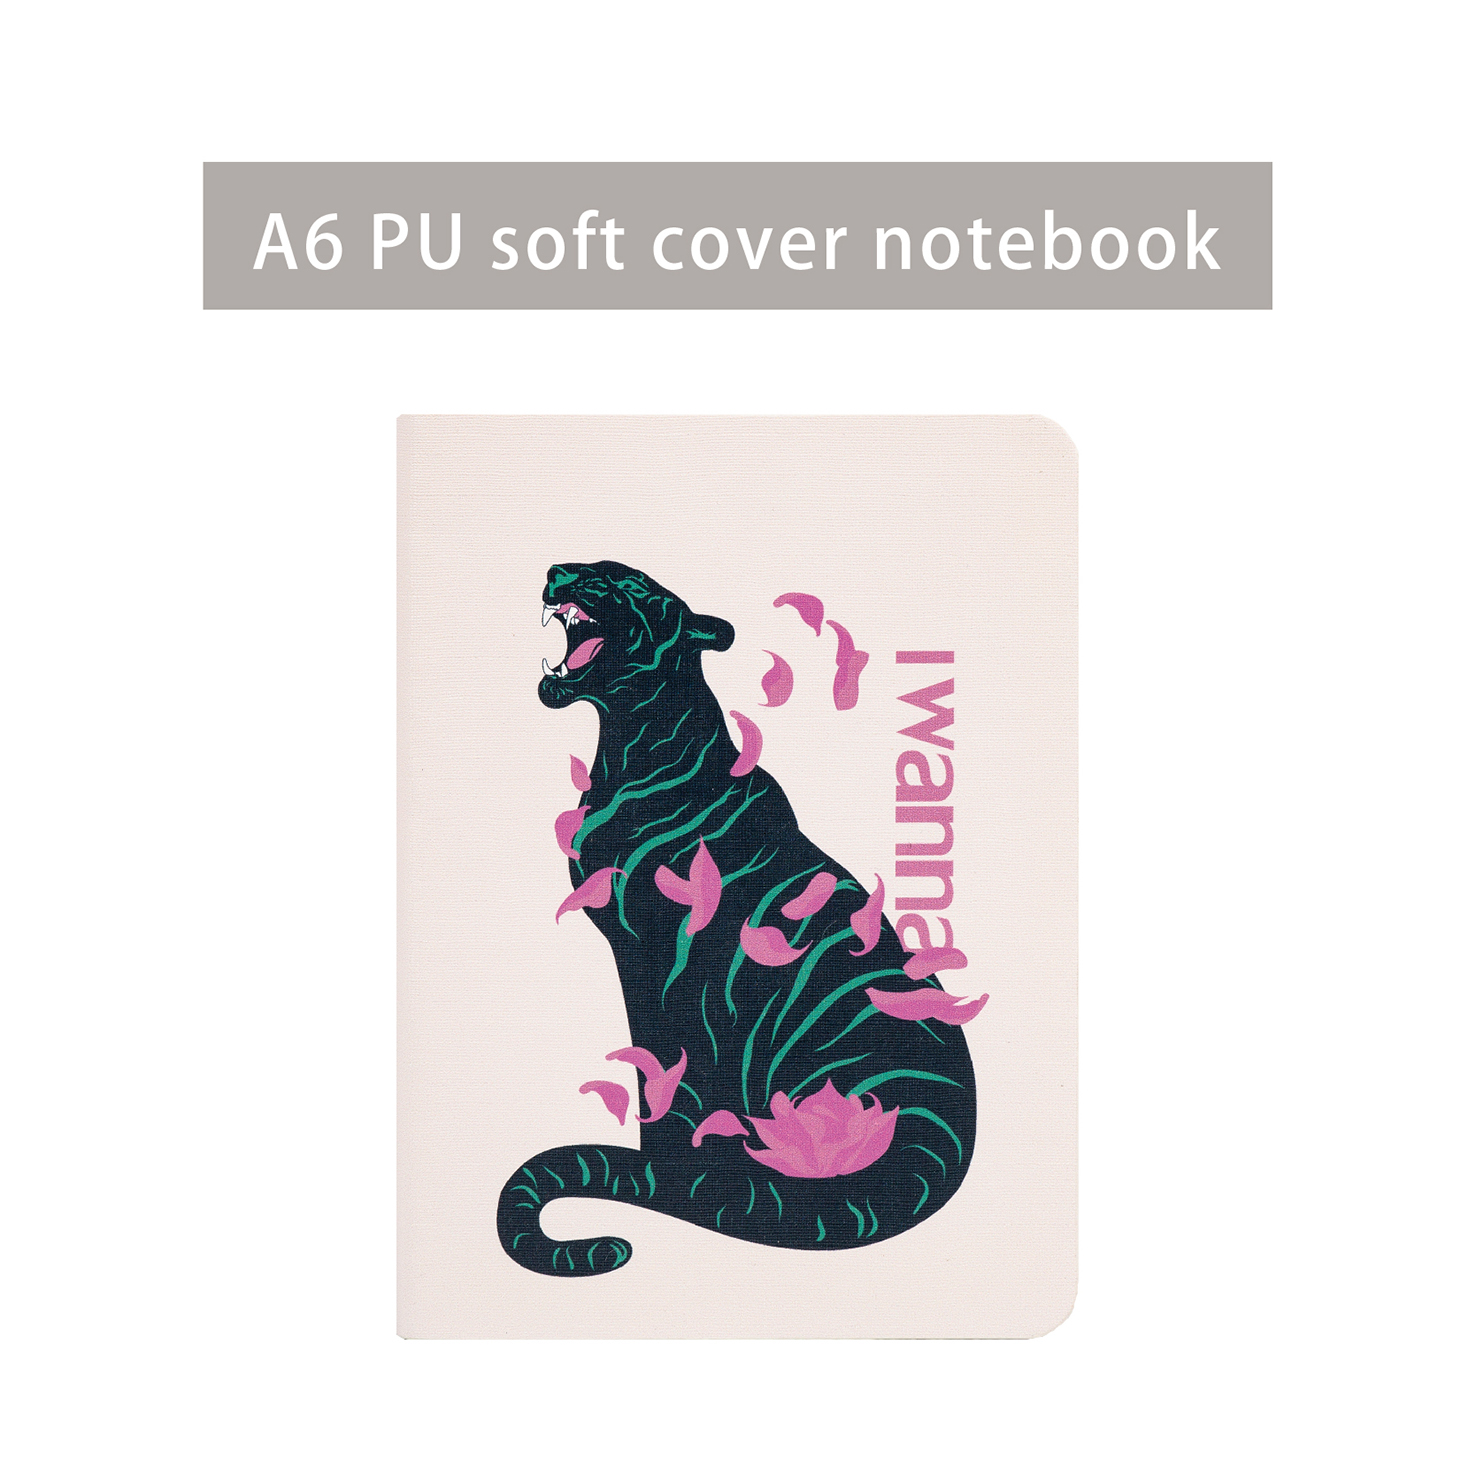 Postmodernism school A6 PU Notebook